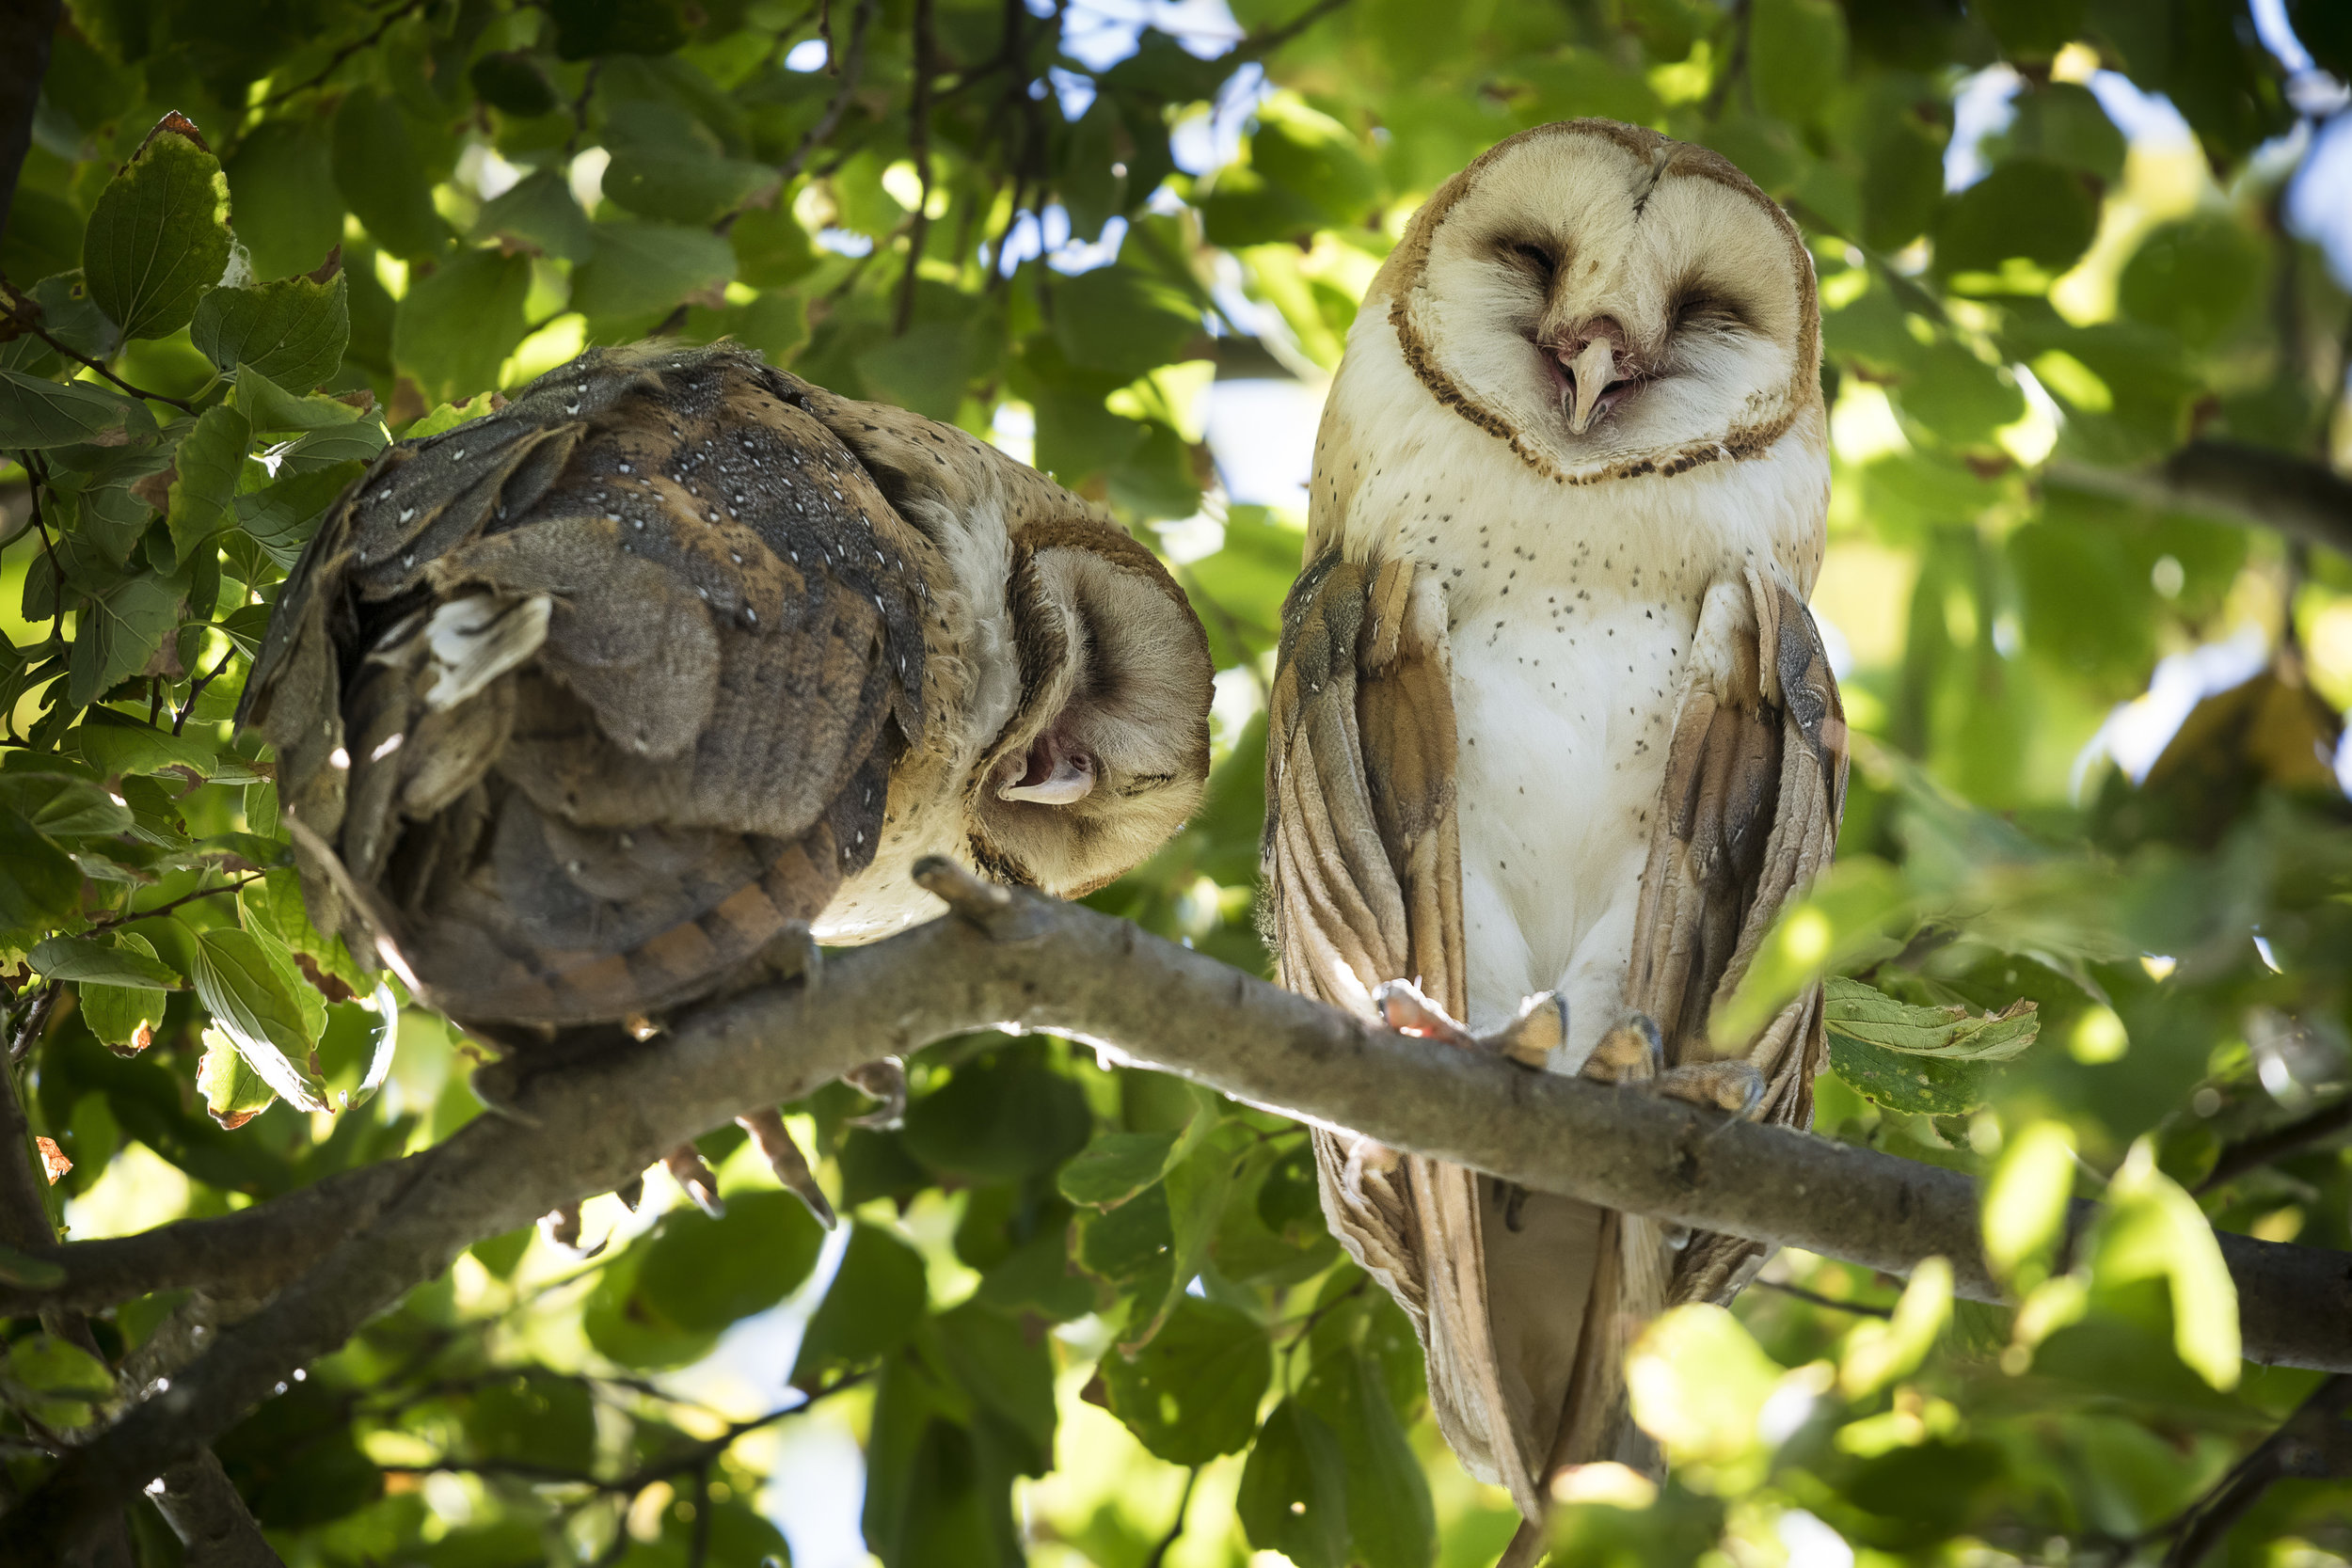 Two owls in a tree looking down at camera